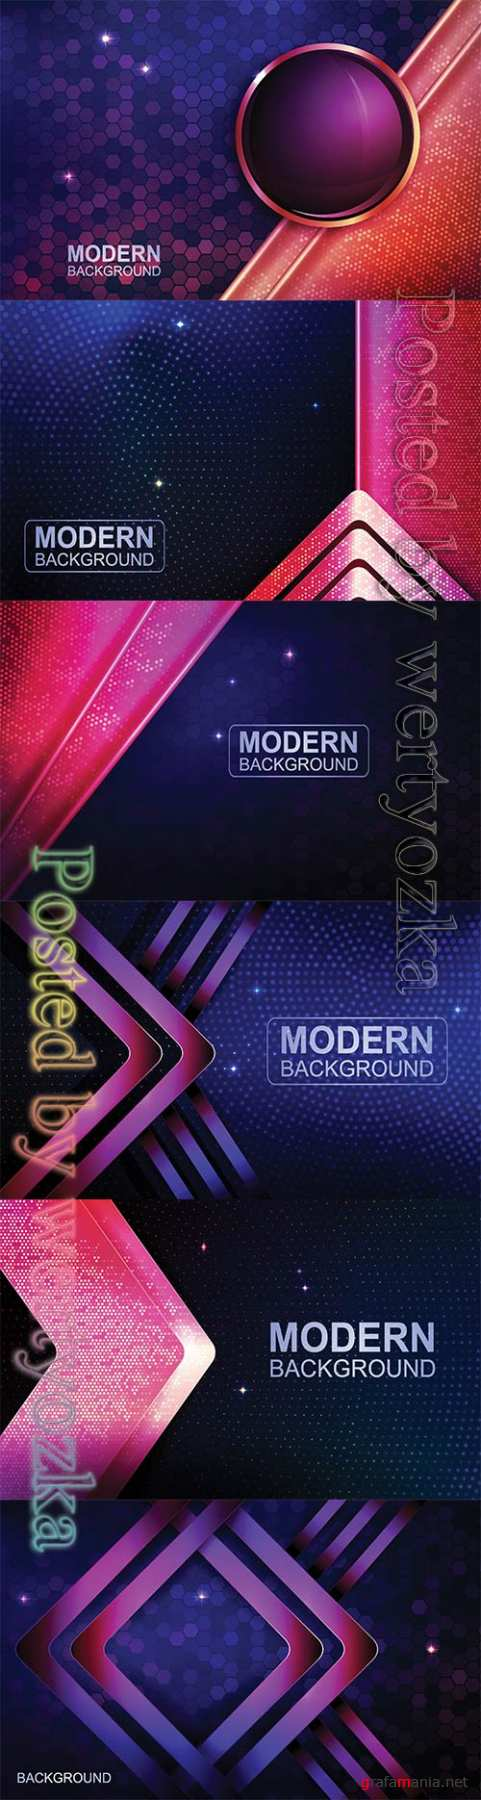 Abstract luxury vector backgrounds with different shapes